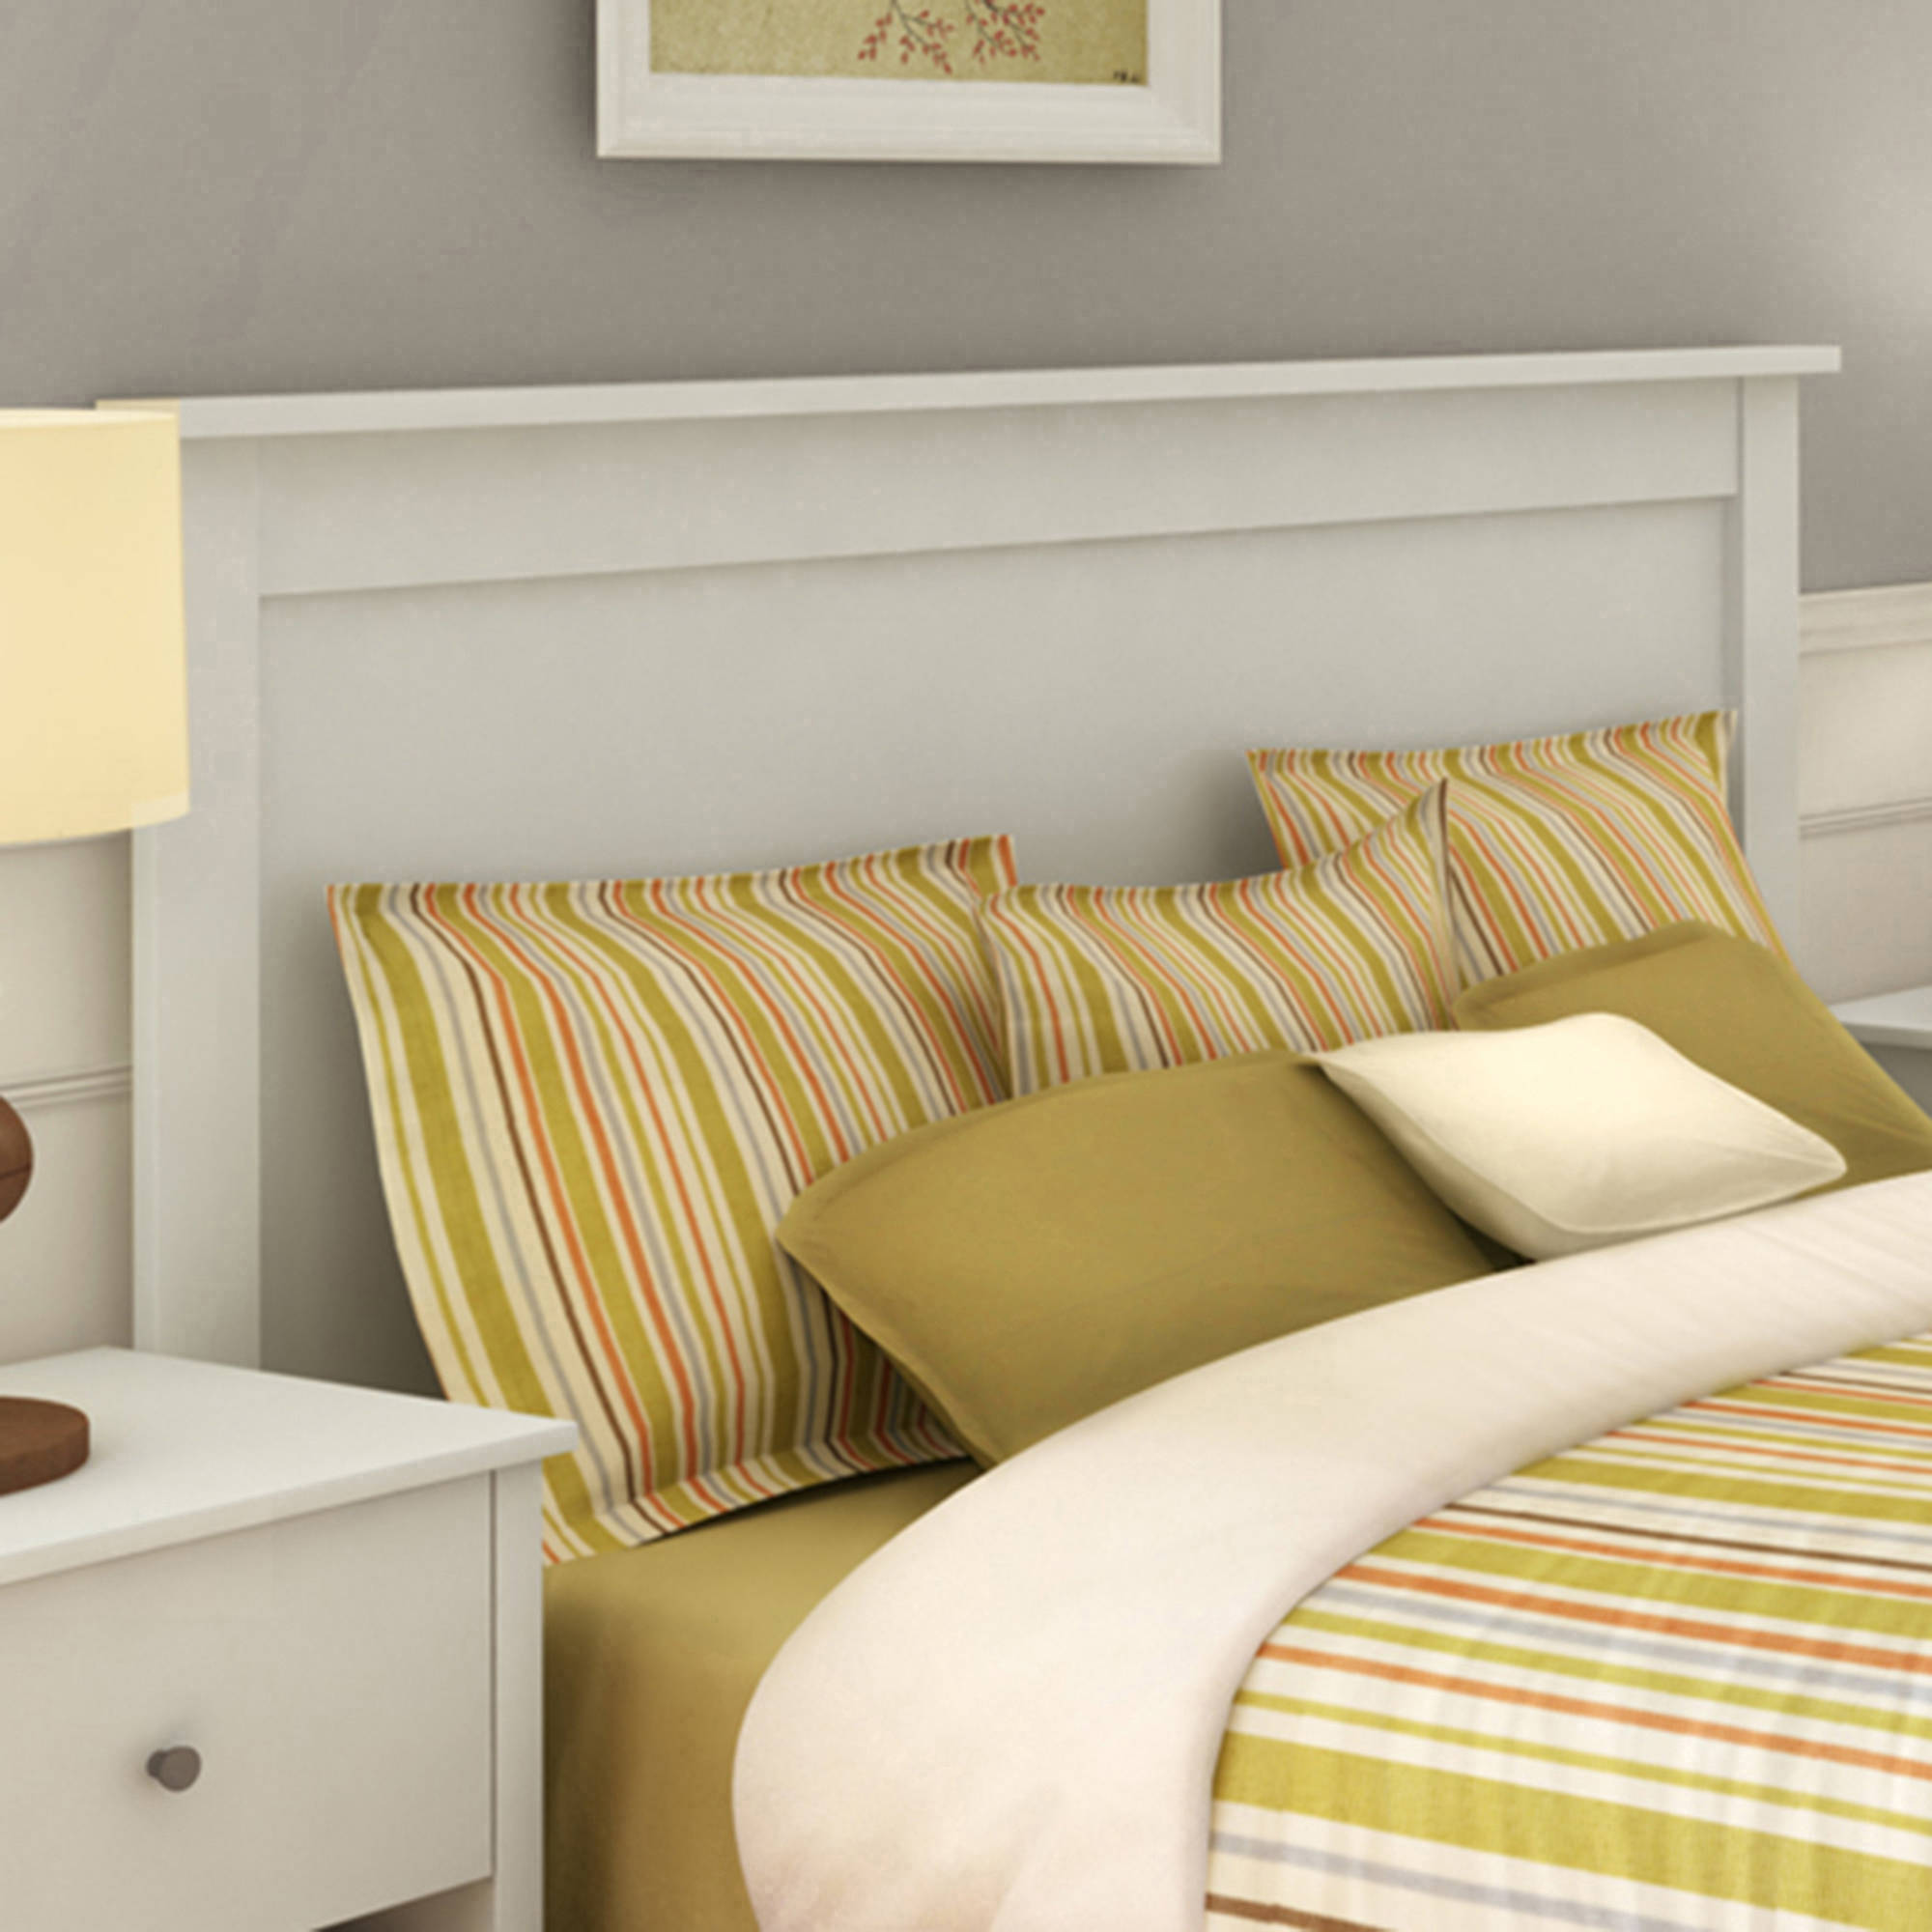 South Shore Vito Full/Queen Headboard, Multiple Finishes